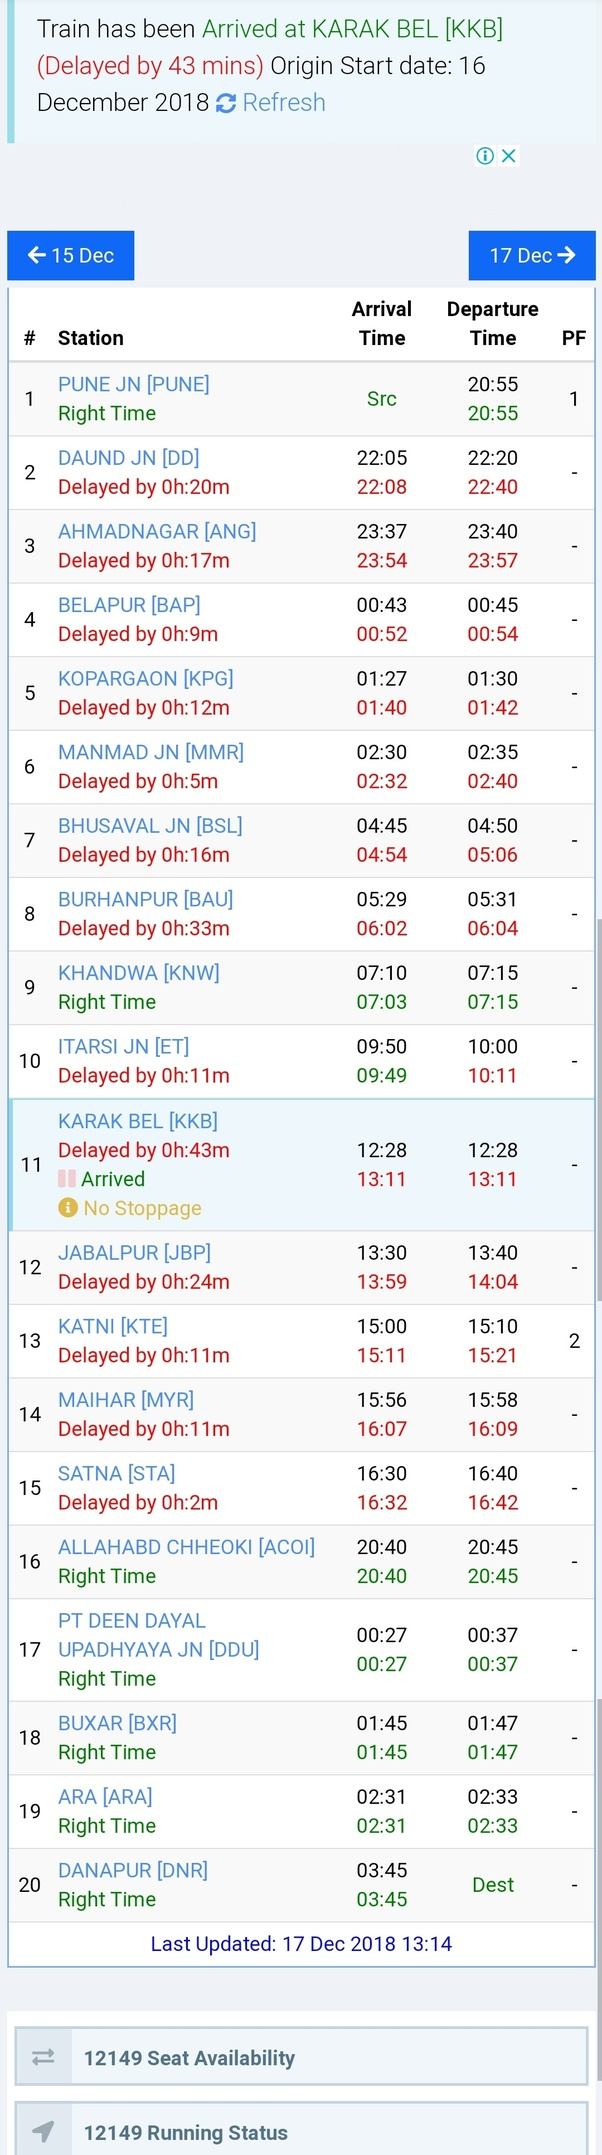 Which is the best app to know running status of a train? - Quora